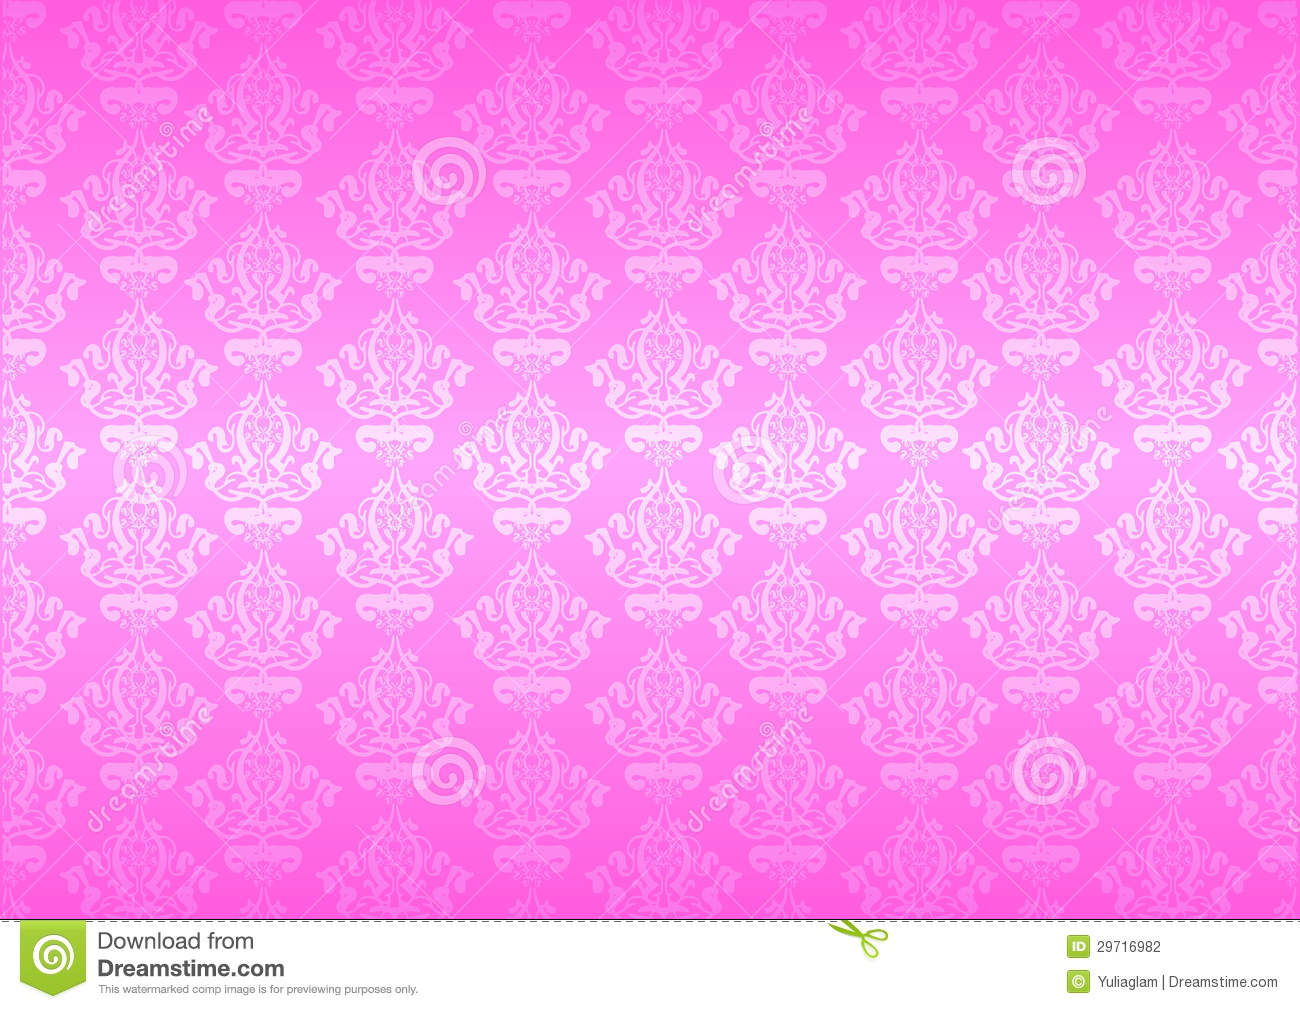 Vector Pink Wallpaper Stock Photography - Image: 29716982